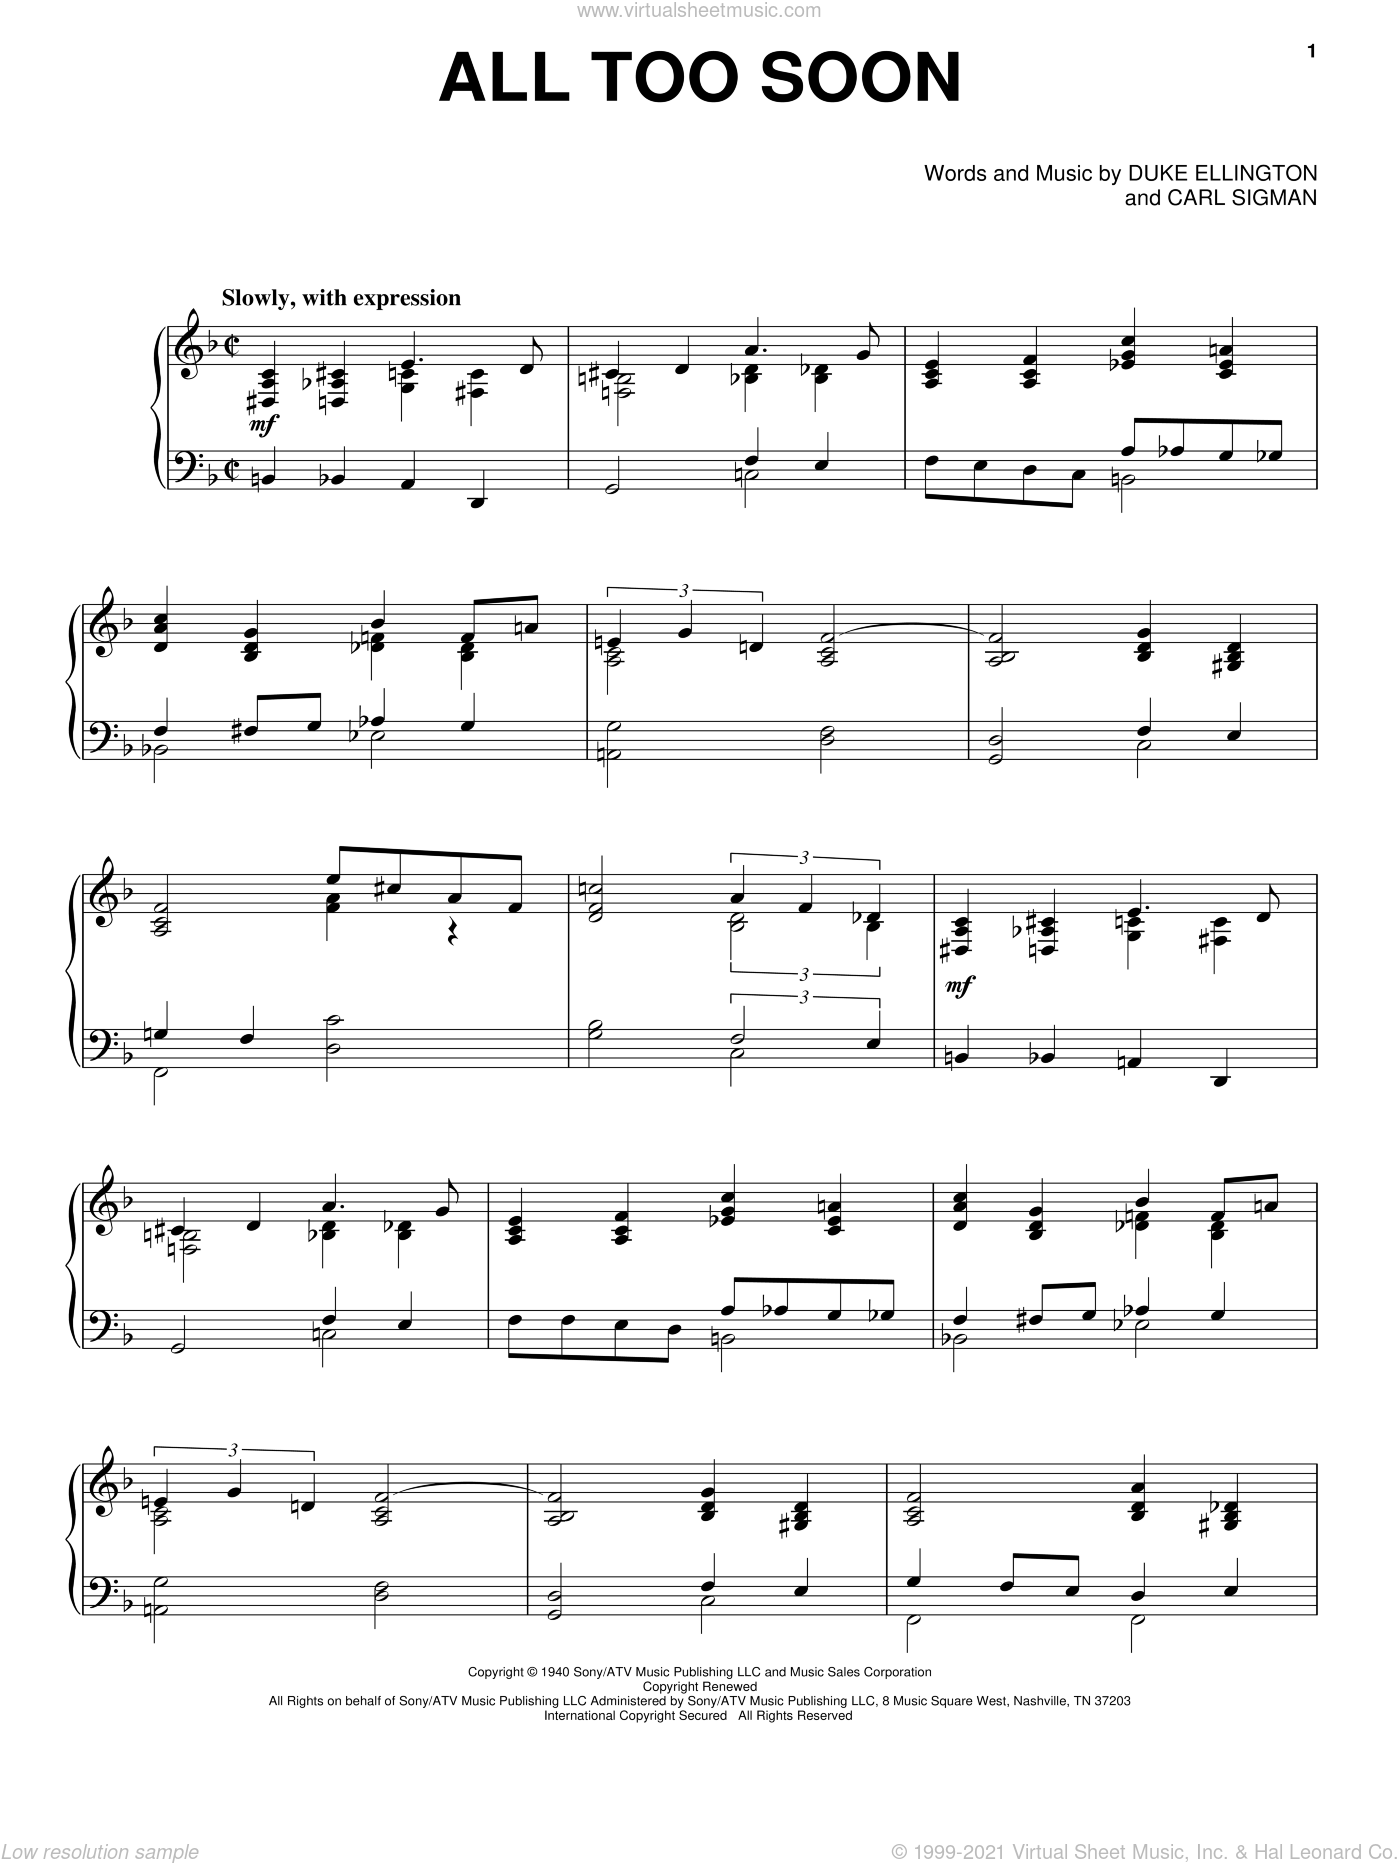 All Too Soon sheet music for voice, piano or guitar by Carl Sigman